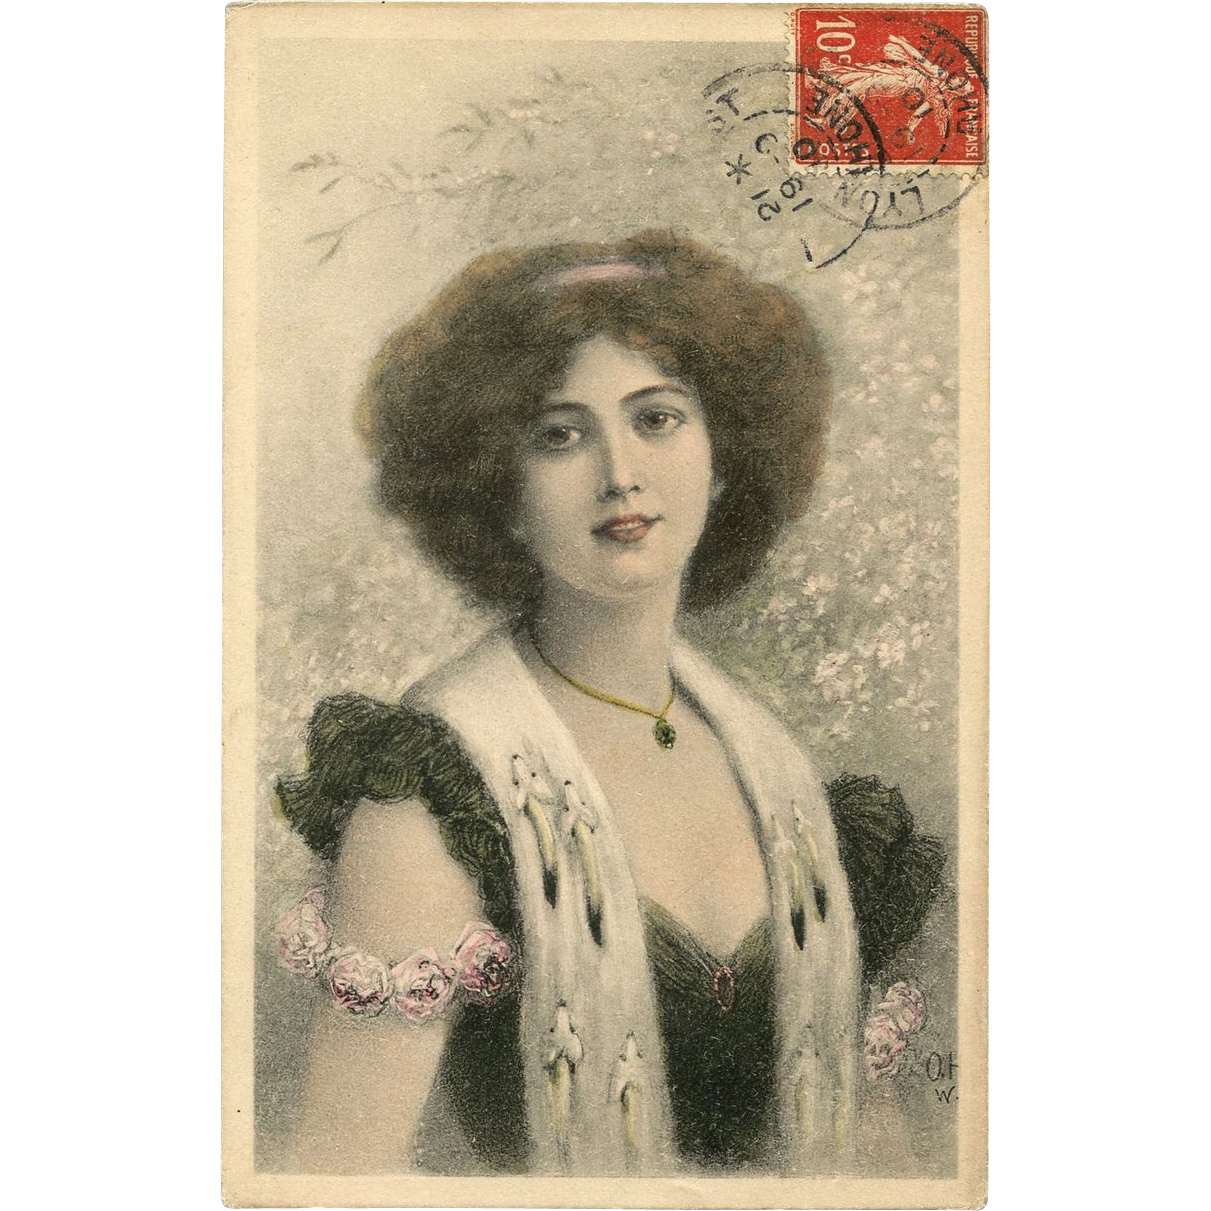 Woman in ERMINE fur stole Illustration 1910 German lithograph postcard